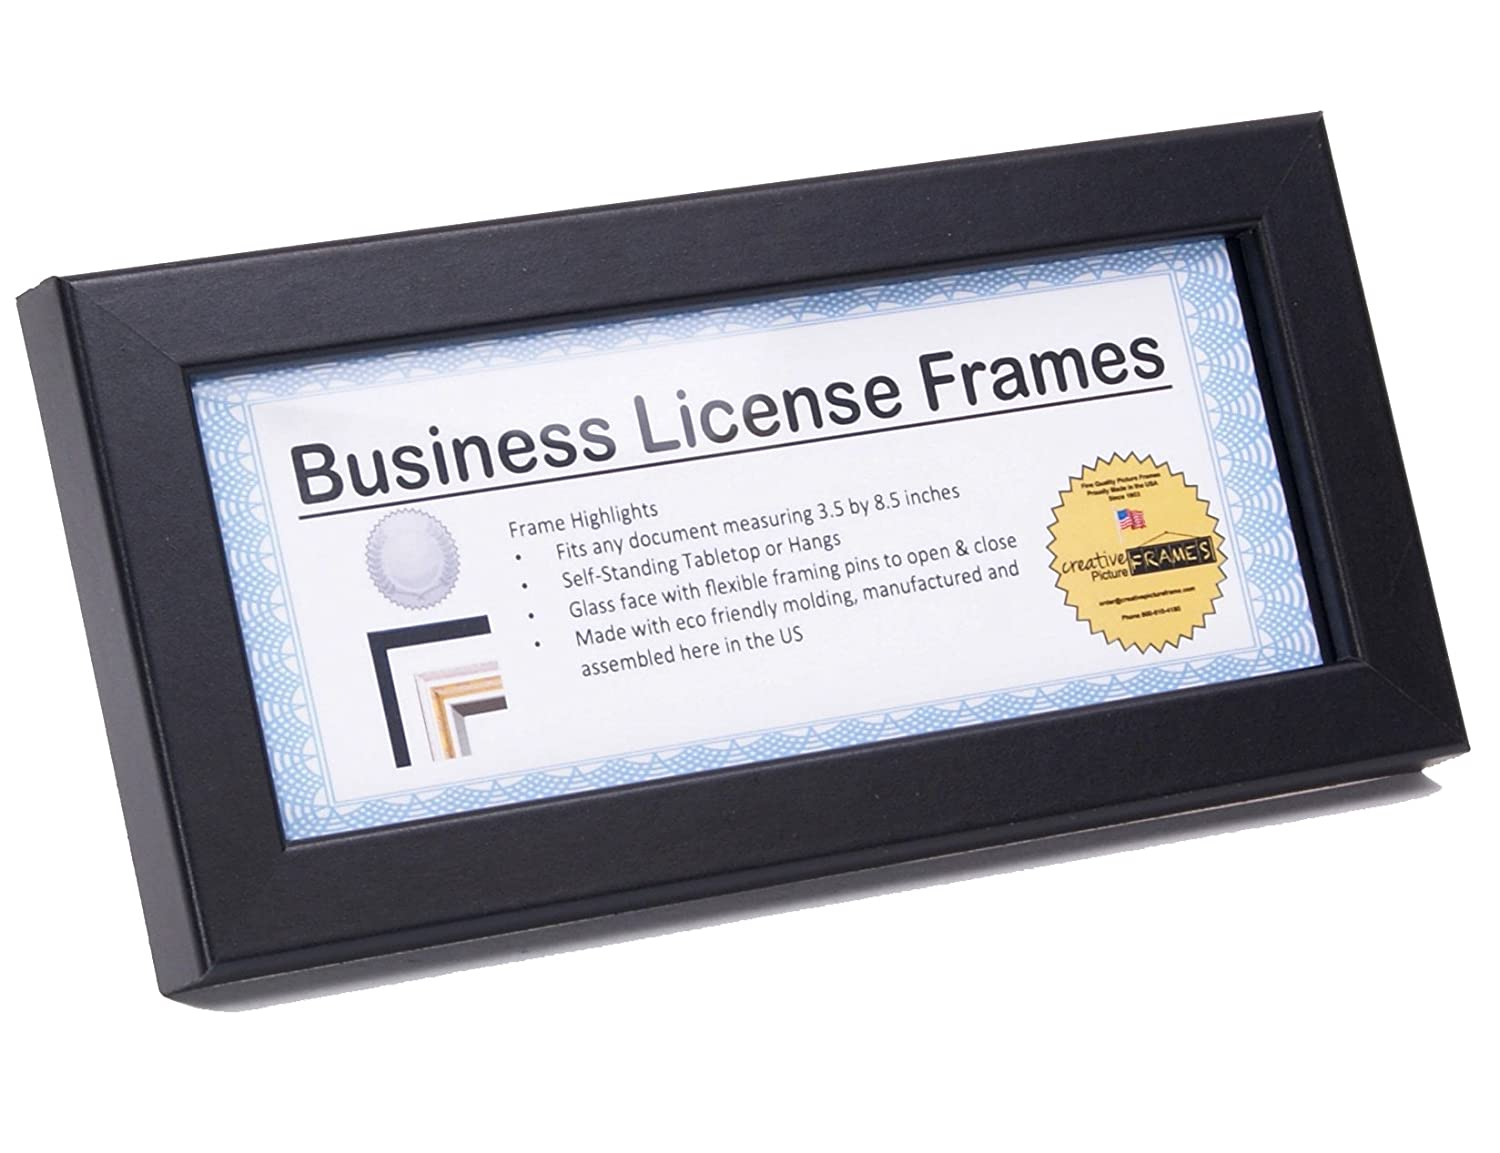 Amazon.com: 3.5 by 8.5 inch Professional Black Business License ...